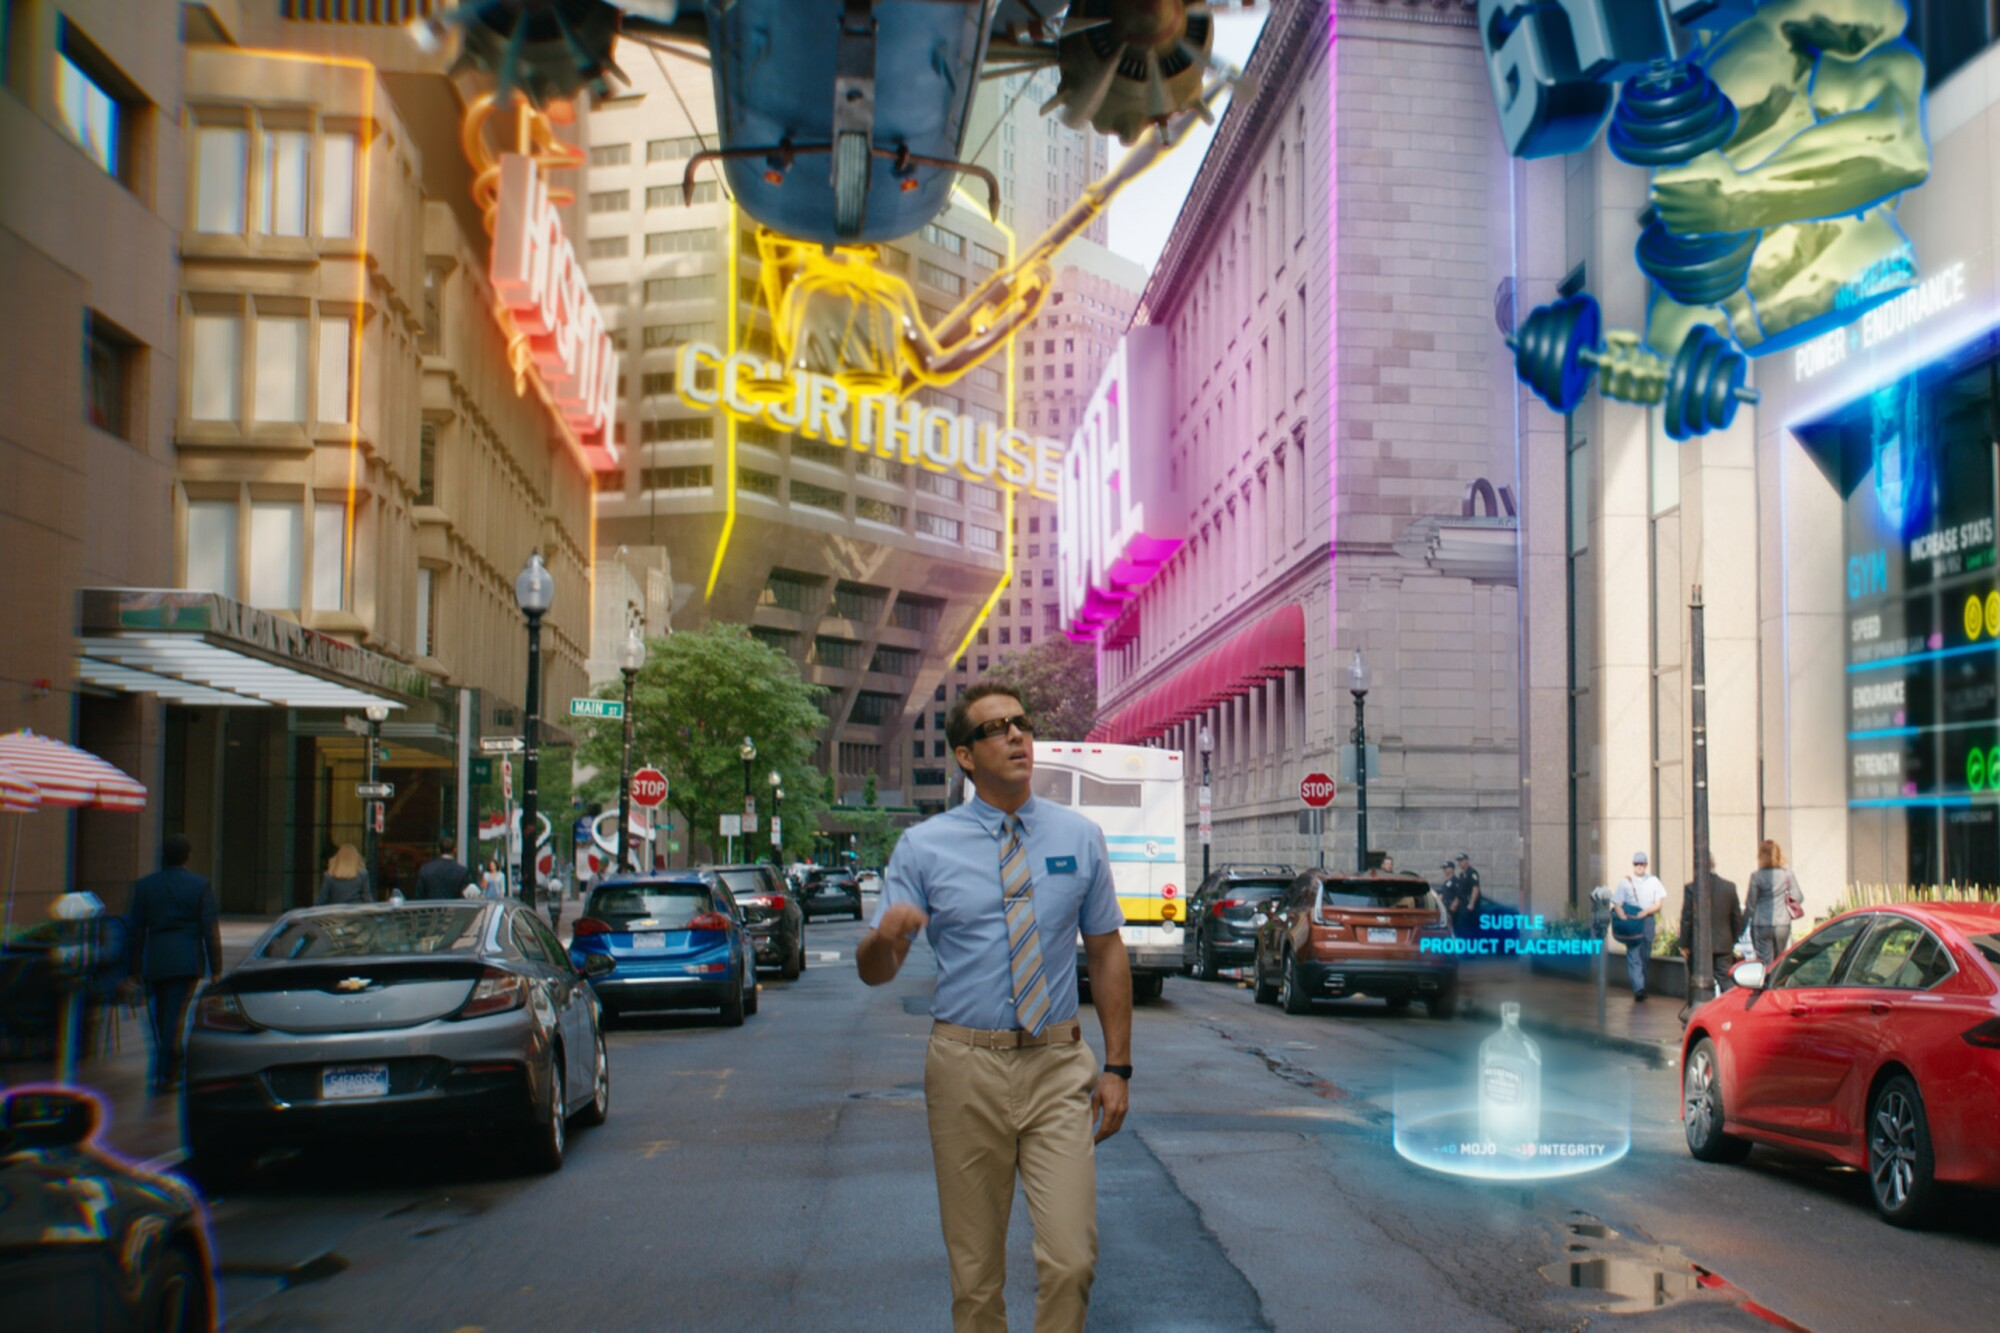 Ryan Reynolds walks down a street lit up with neon signs.